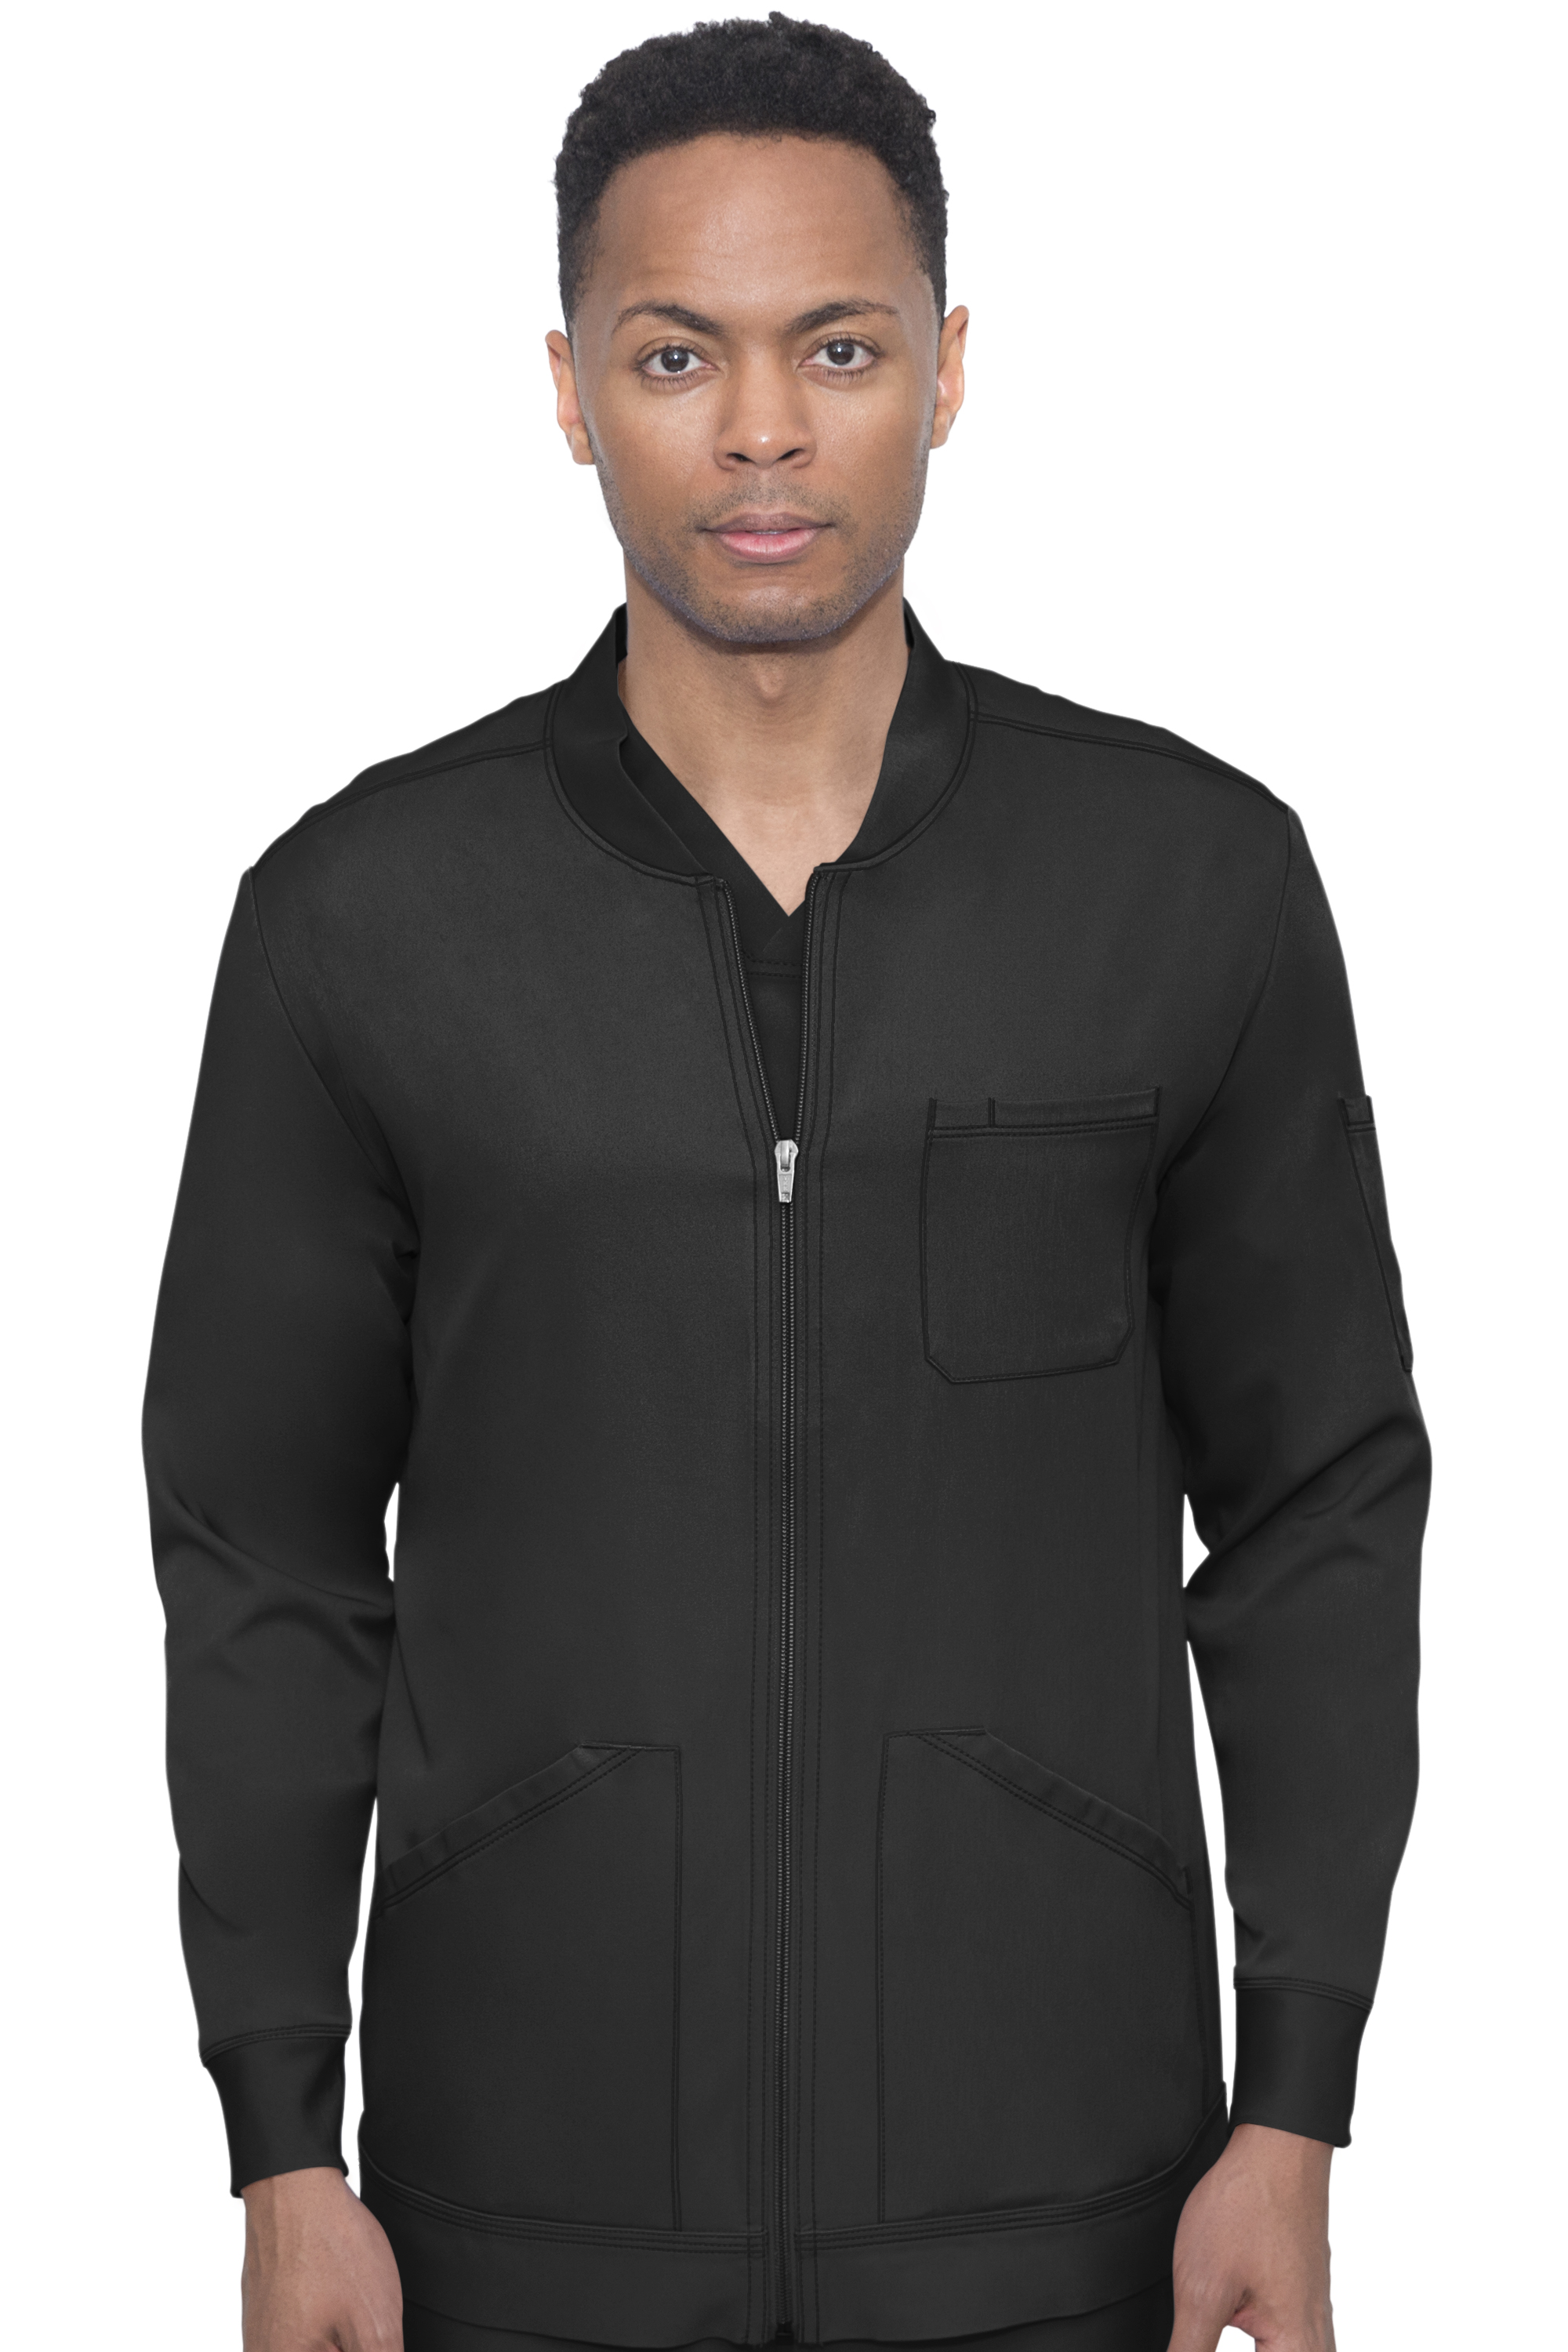 Michael Zip Front Scrub Jacket-Hh Works